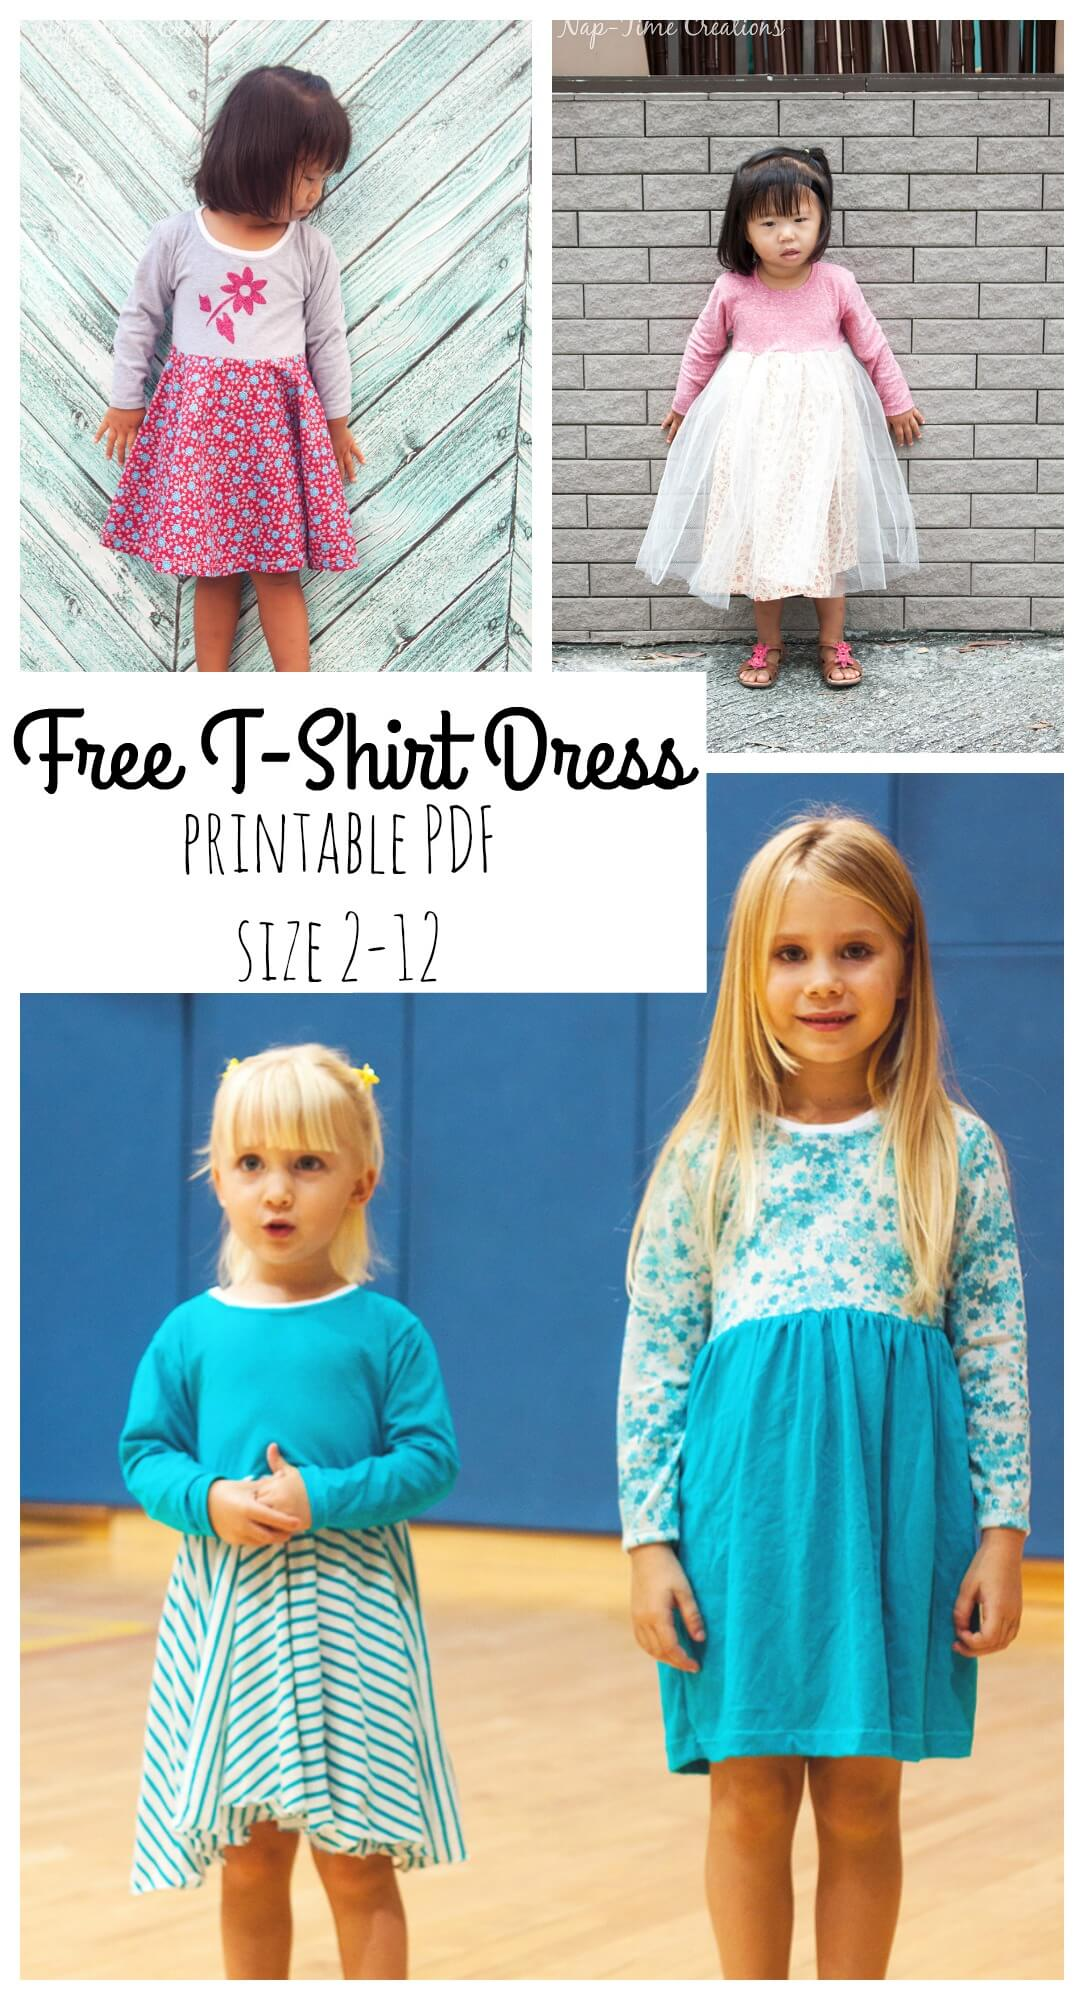 T-shirt dress free pdf pattern by Nap-Time Creations